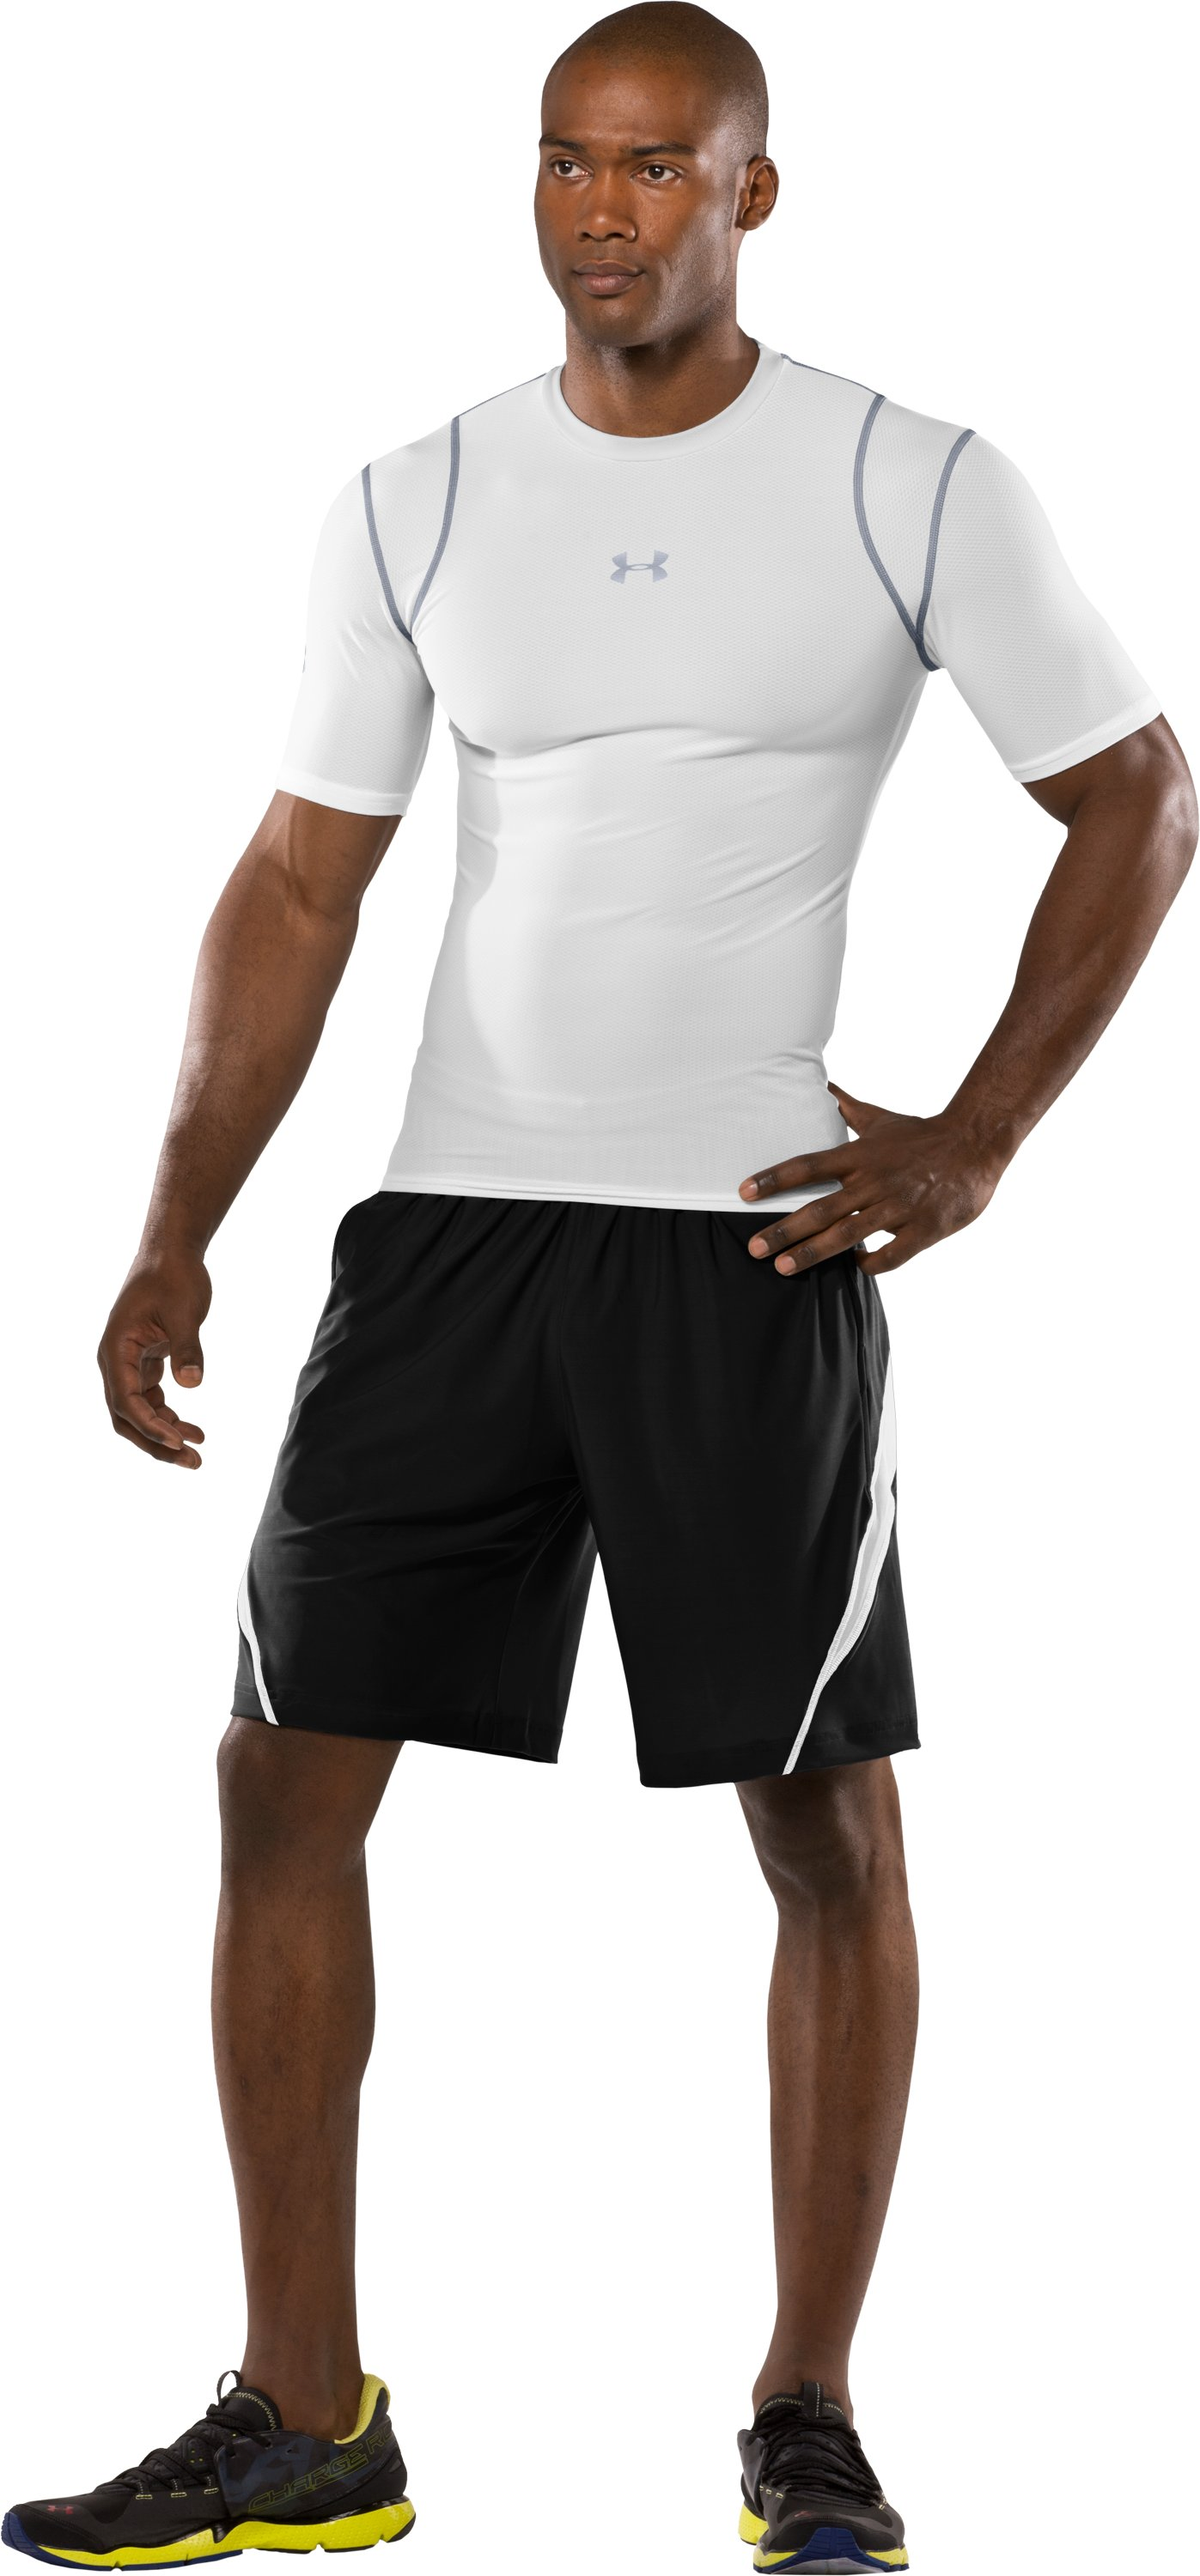 Men's HeatGear® Vented Compression Short Sleeve T-Shirt, White, Front